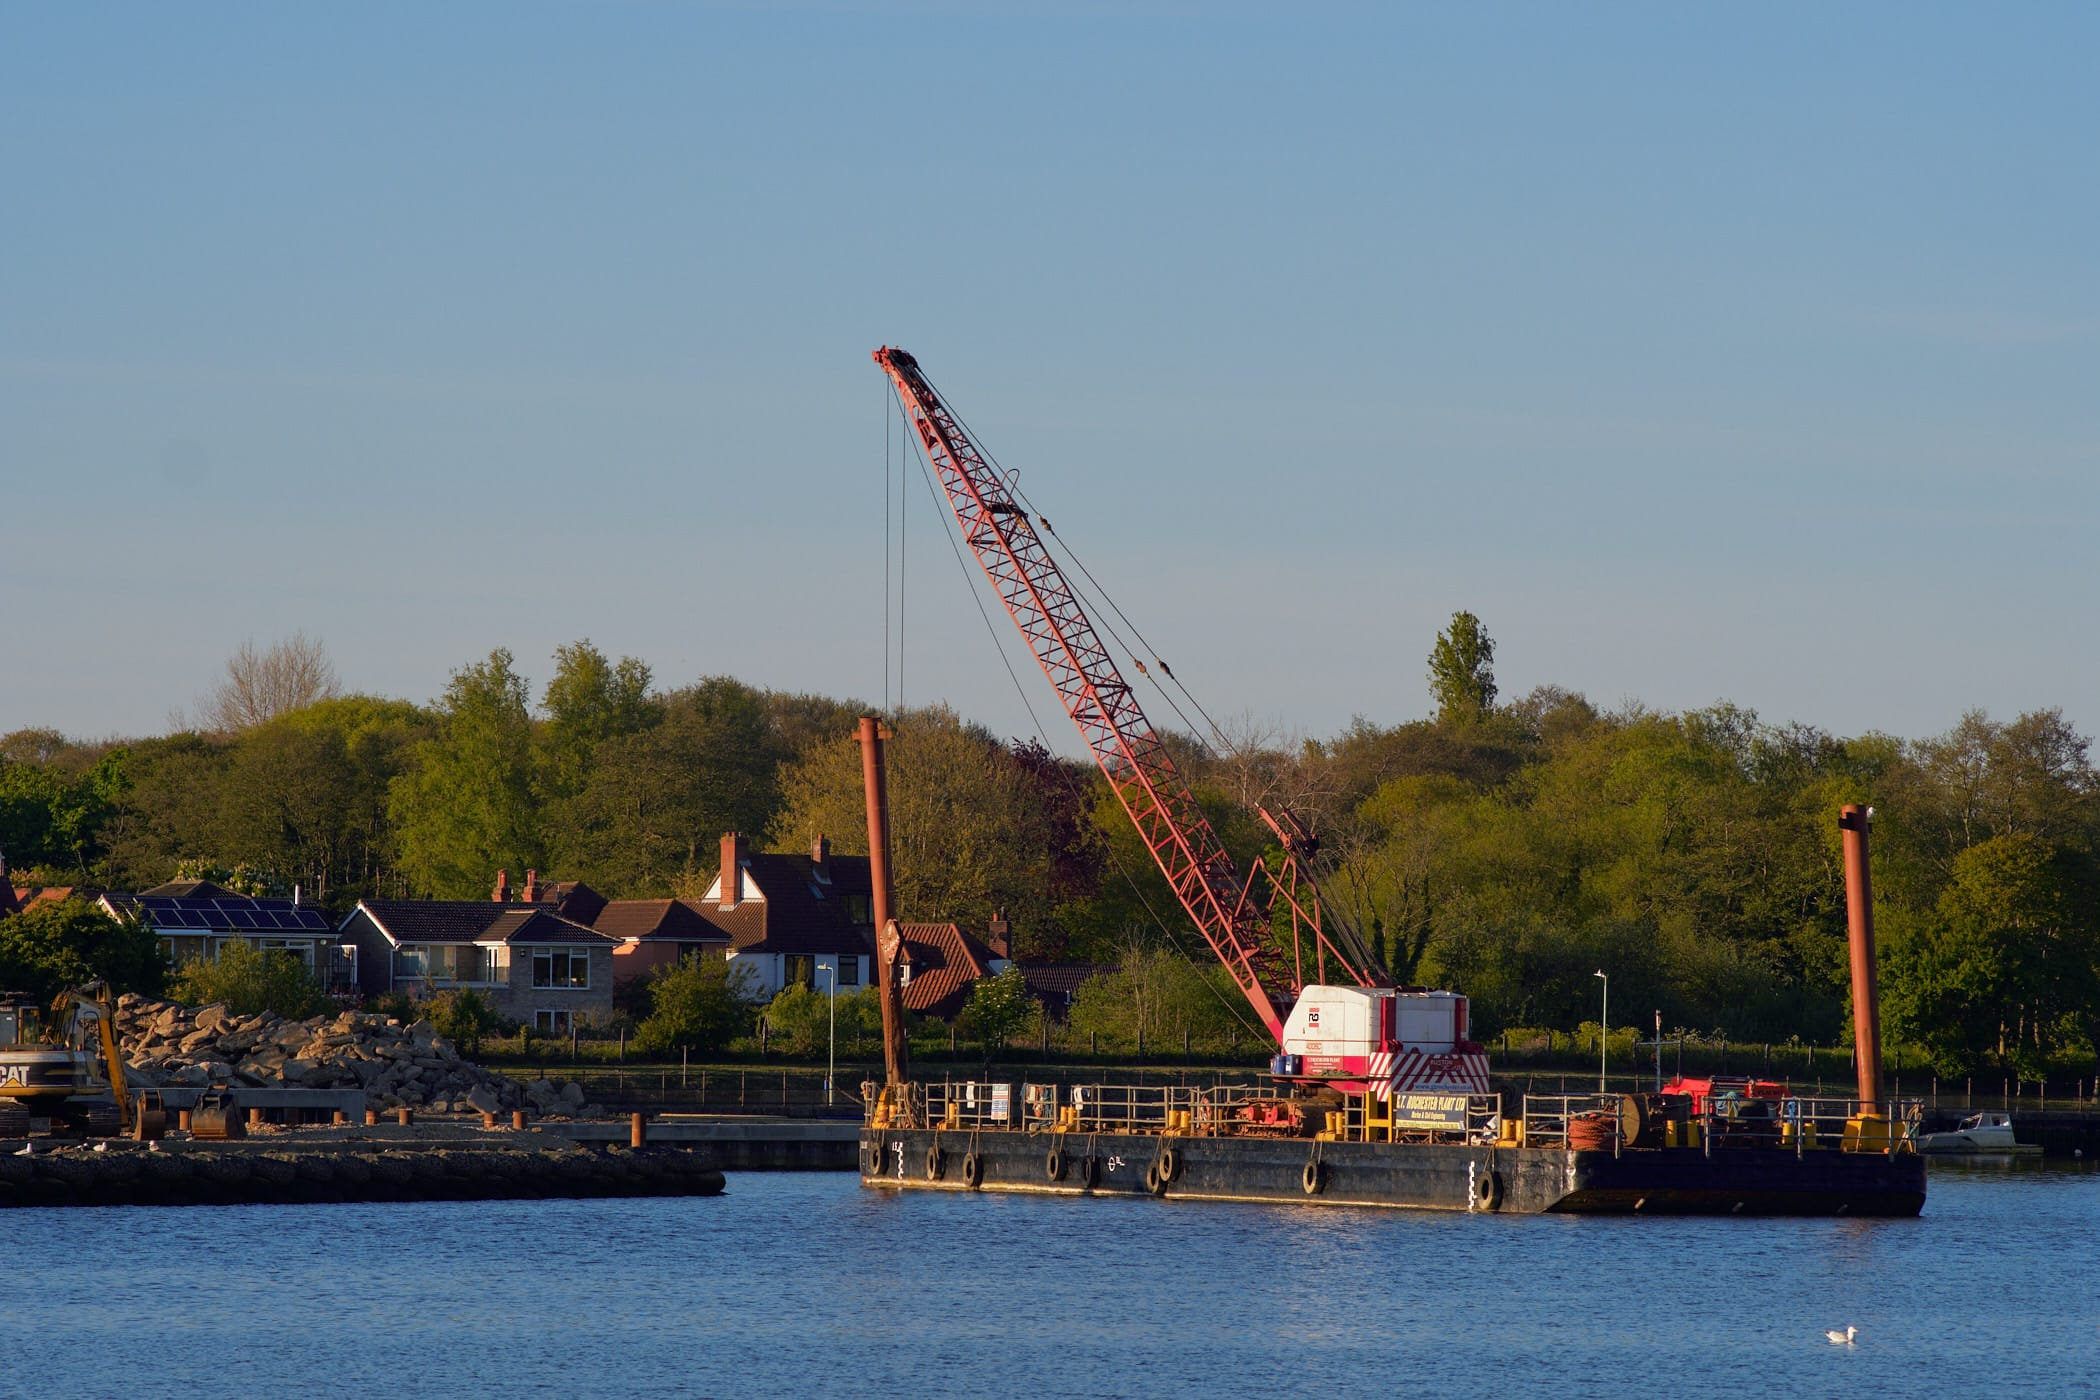 crane on a barge